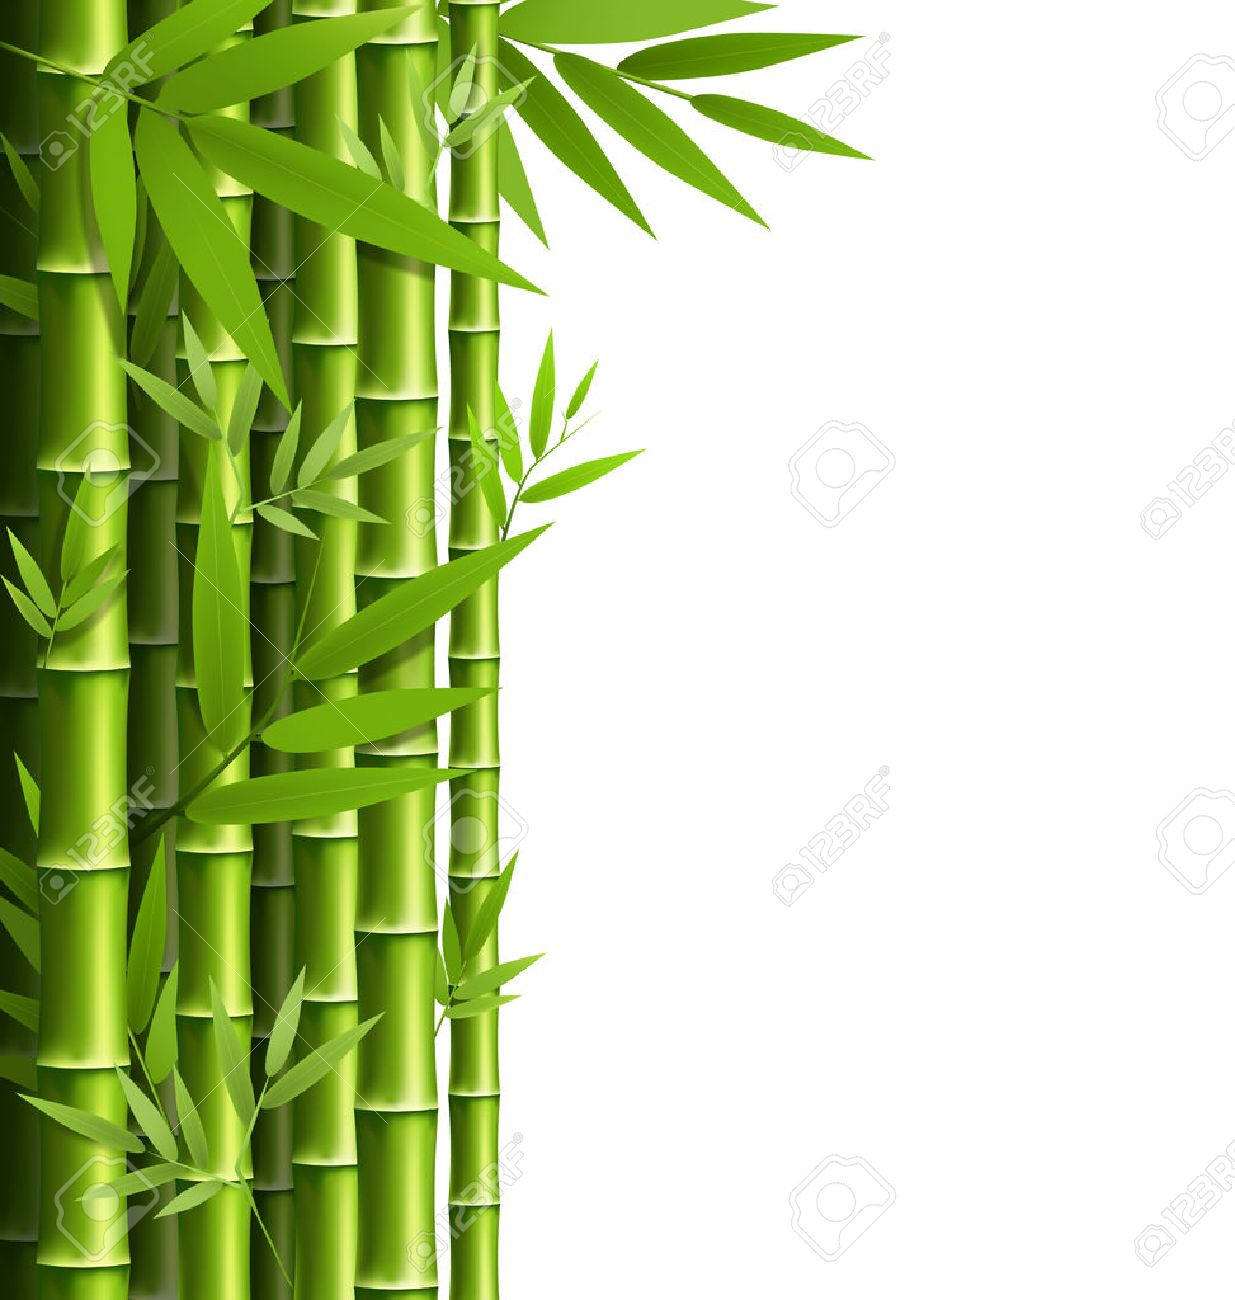 Green bamboo grove isolated on white background - 38424762